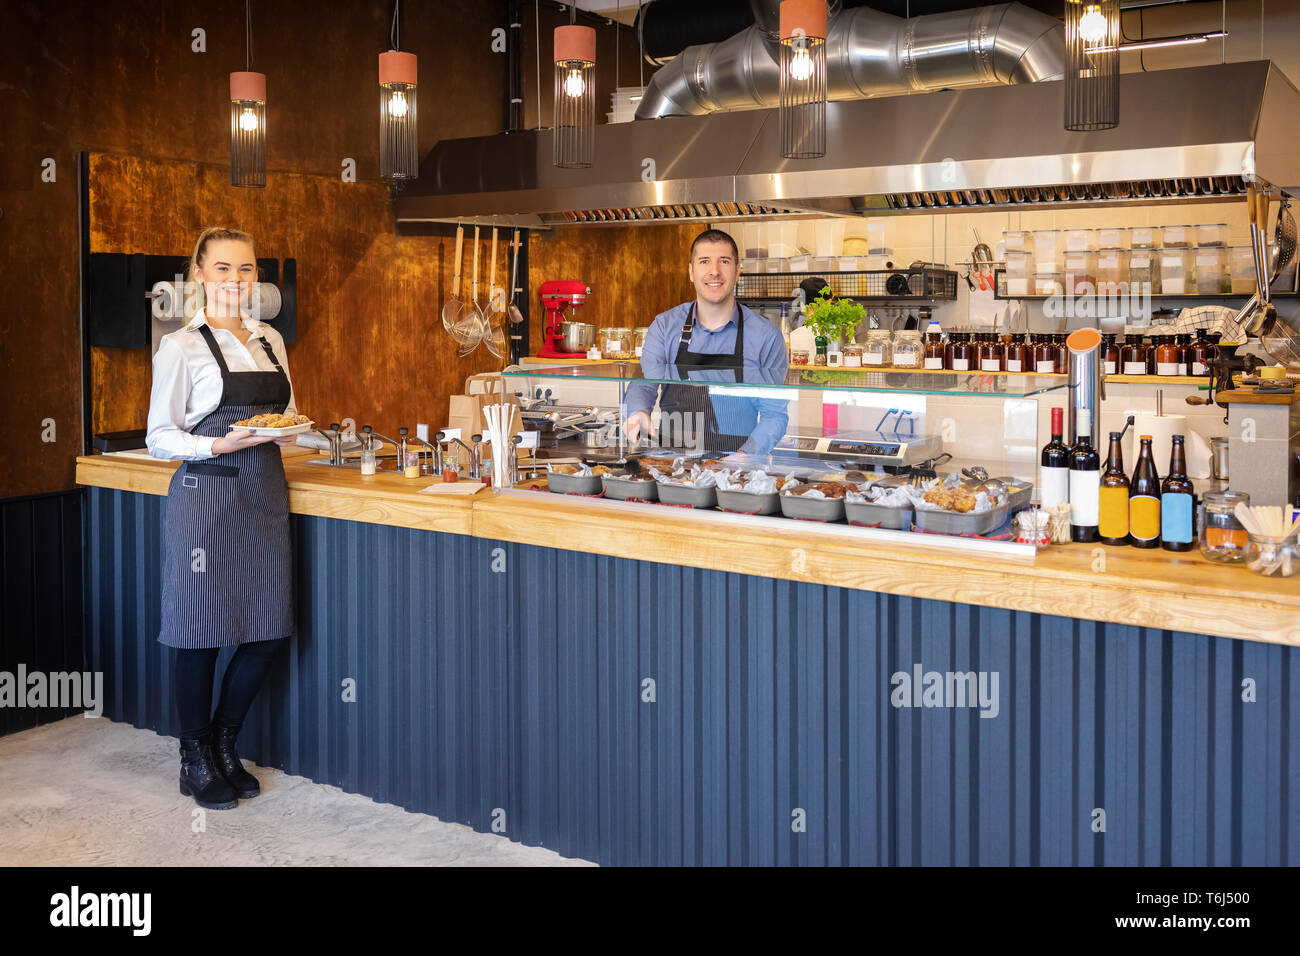 Counter service at modern bistro with smiling waiters serving food – happy business owners in small restaurant with open kitchen inviting people insid - Stock Image